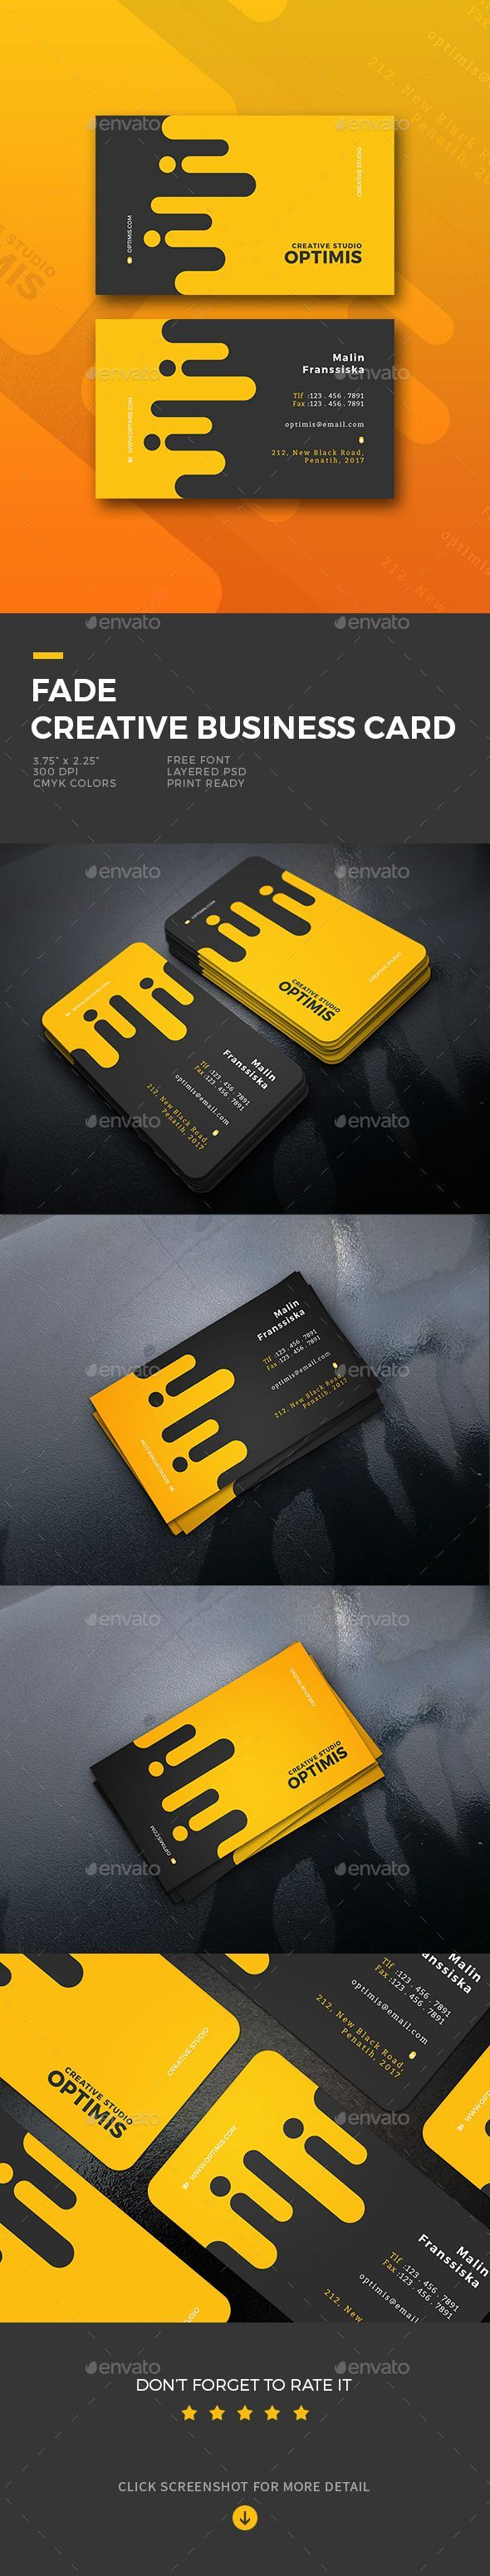 Fade #Creative Business Card - #Business #Cards #Print Templates Download here: https://graphicriver.net/item/fade-creative-business-card/19634383?ref=alena994